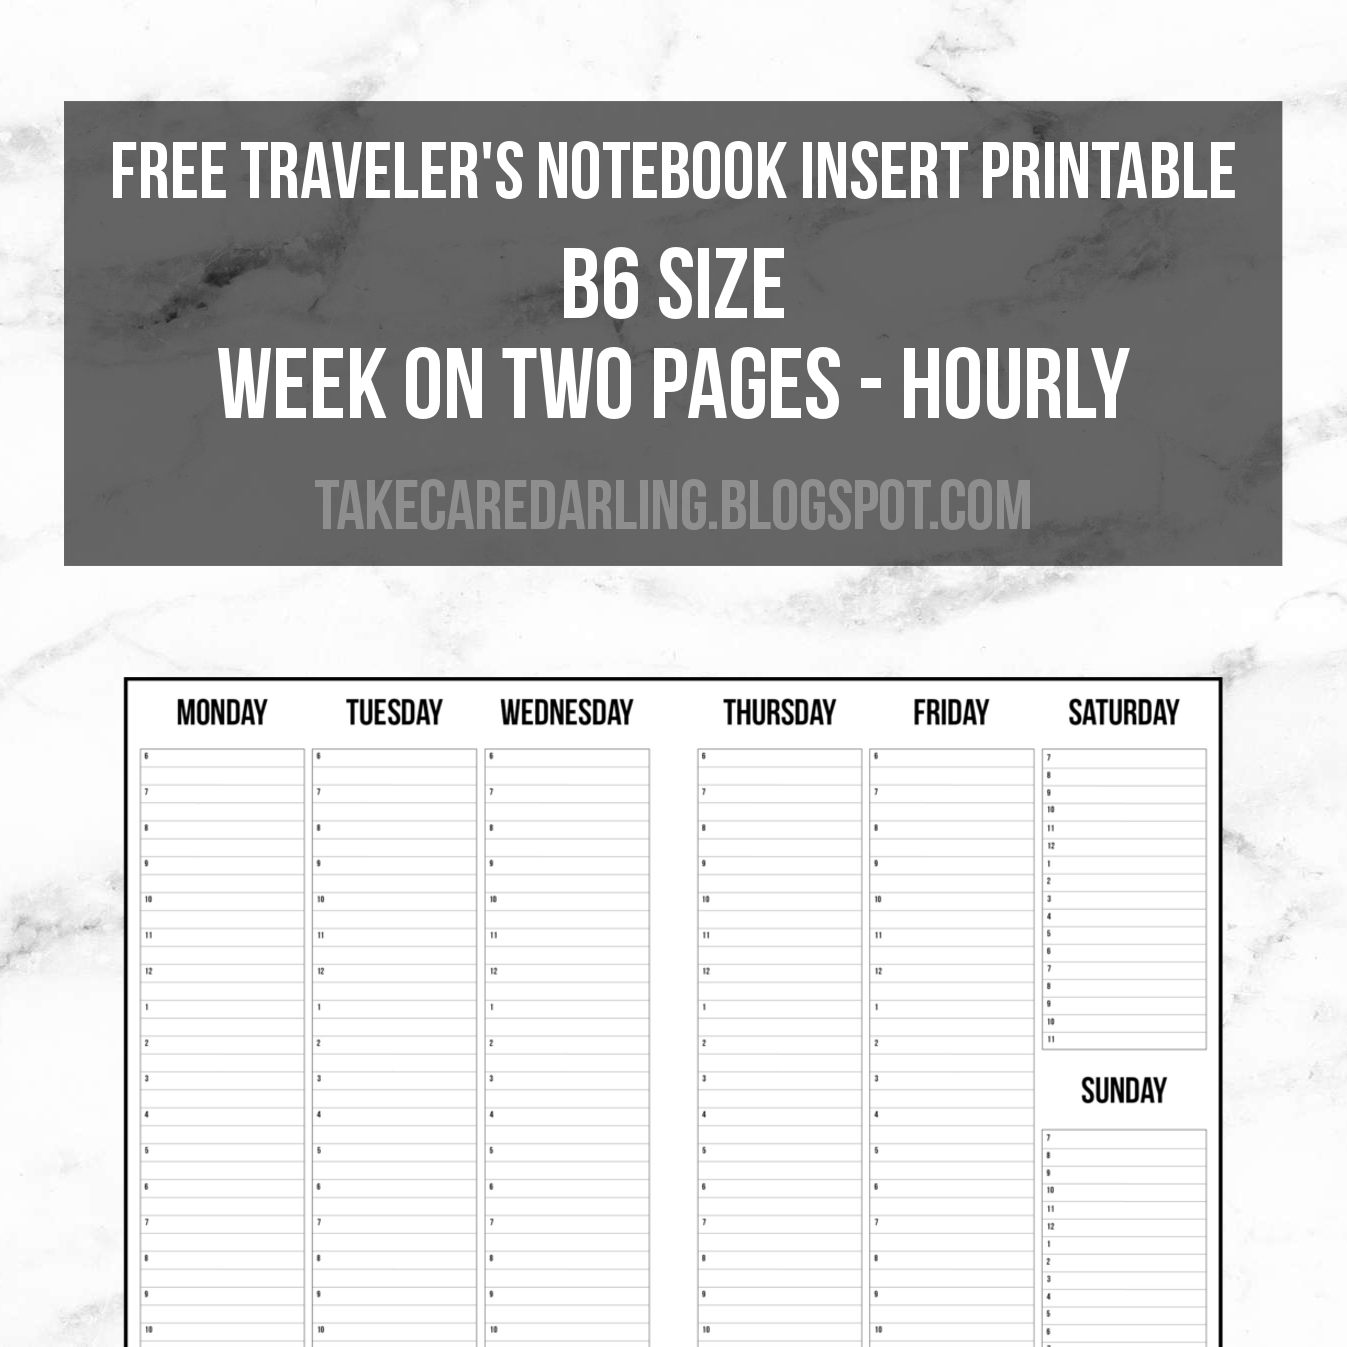 Free Traveler's Notebook Insert Printable B6 Size Week On Two Pages - Free Printable Traveler's Notebook Inserts